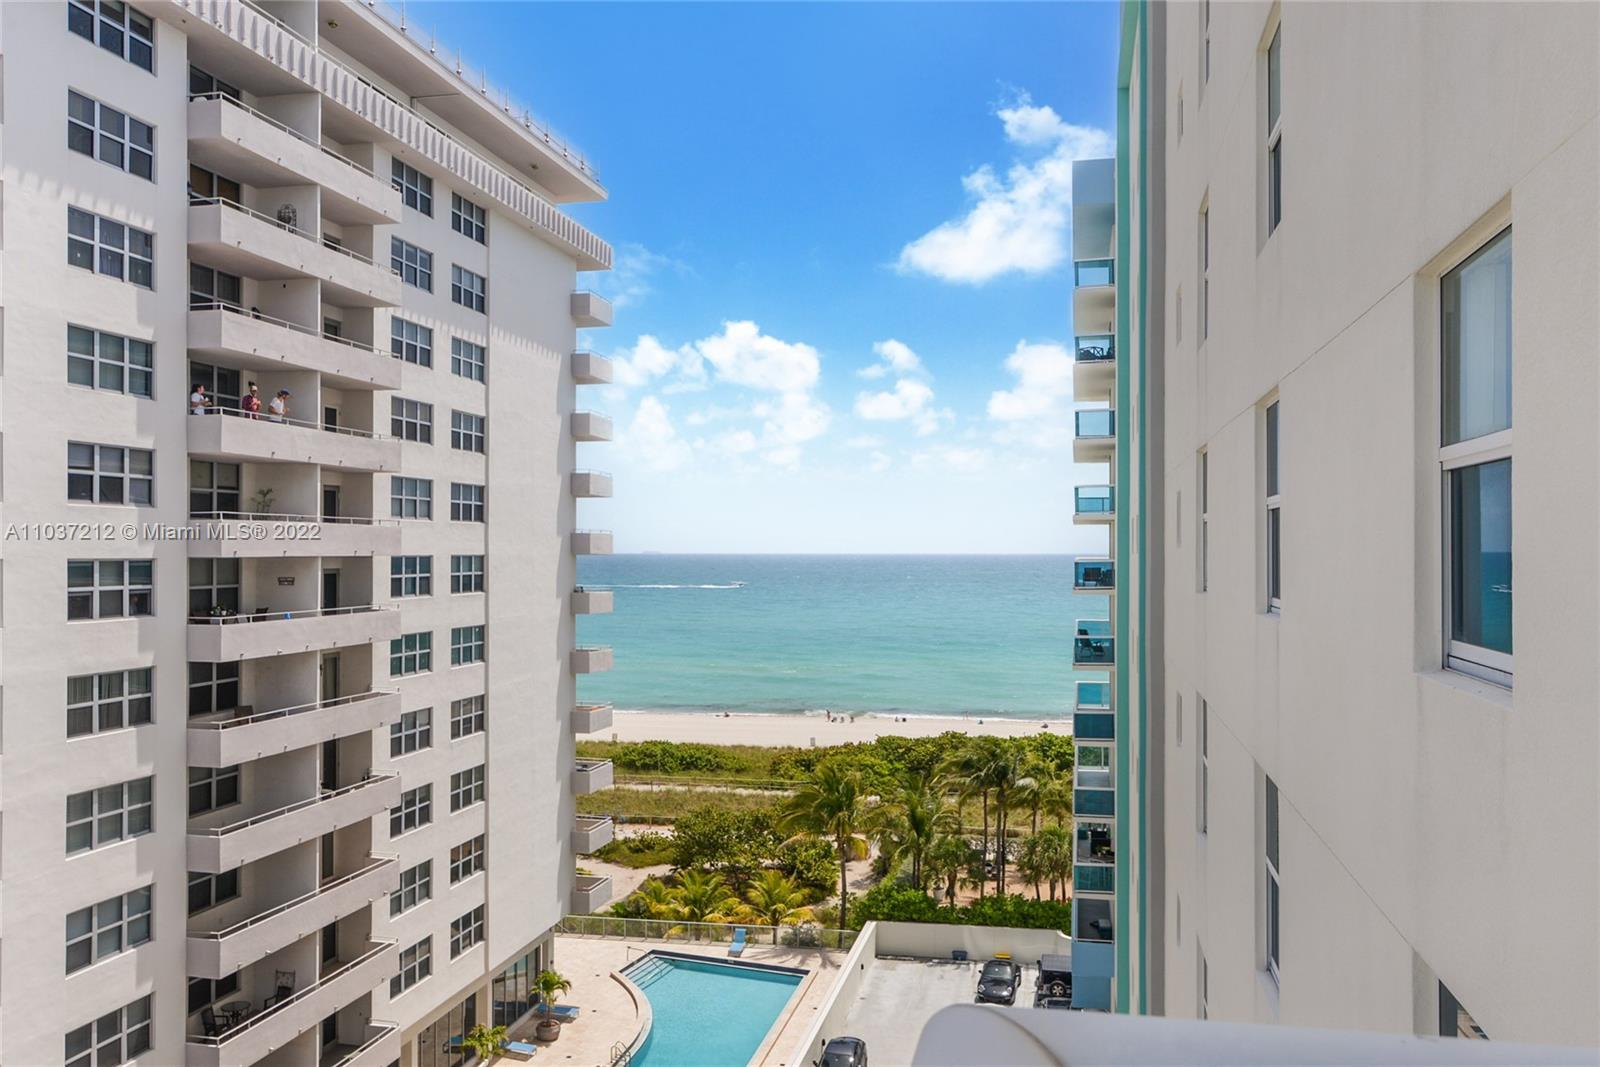 OCEAN FRONT!! Exclusive BOUTIQUE BLDG NW corner unit with 2 beds, 2 baths rarely on the market. Ocean and Sunset views galore. Open Kitchen, Large Master Bath and Walk in Closet. Great Building Amenities: 2 Heated Pools with Jacuzzi, Ocean Lounge, Chairs and Umbrella Service, Barbeque, Beach Volleyball, Gym, Billiard Room, WIFI in Common Area, Bike Storage. Walking distance to Bal Harbour Shops, Publix, Restaurants and much more. LIVING IN THE HEART OF SURFSIDE BEACH. Unit is occupied until August 30th, 2021.